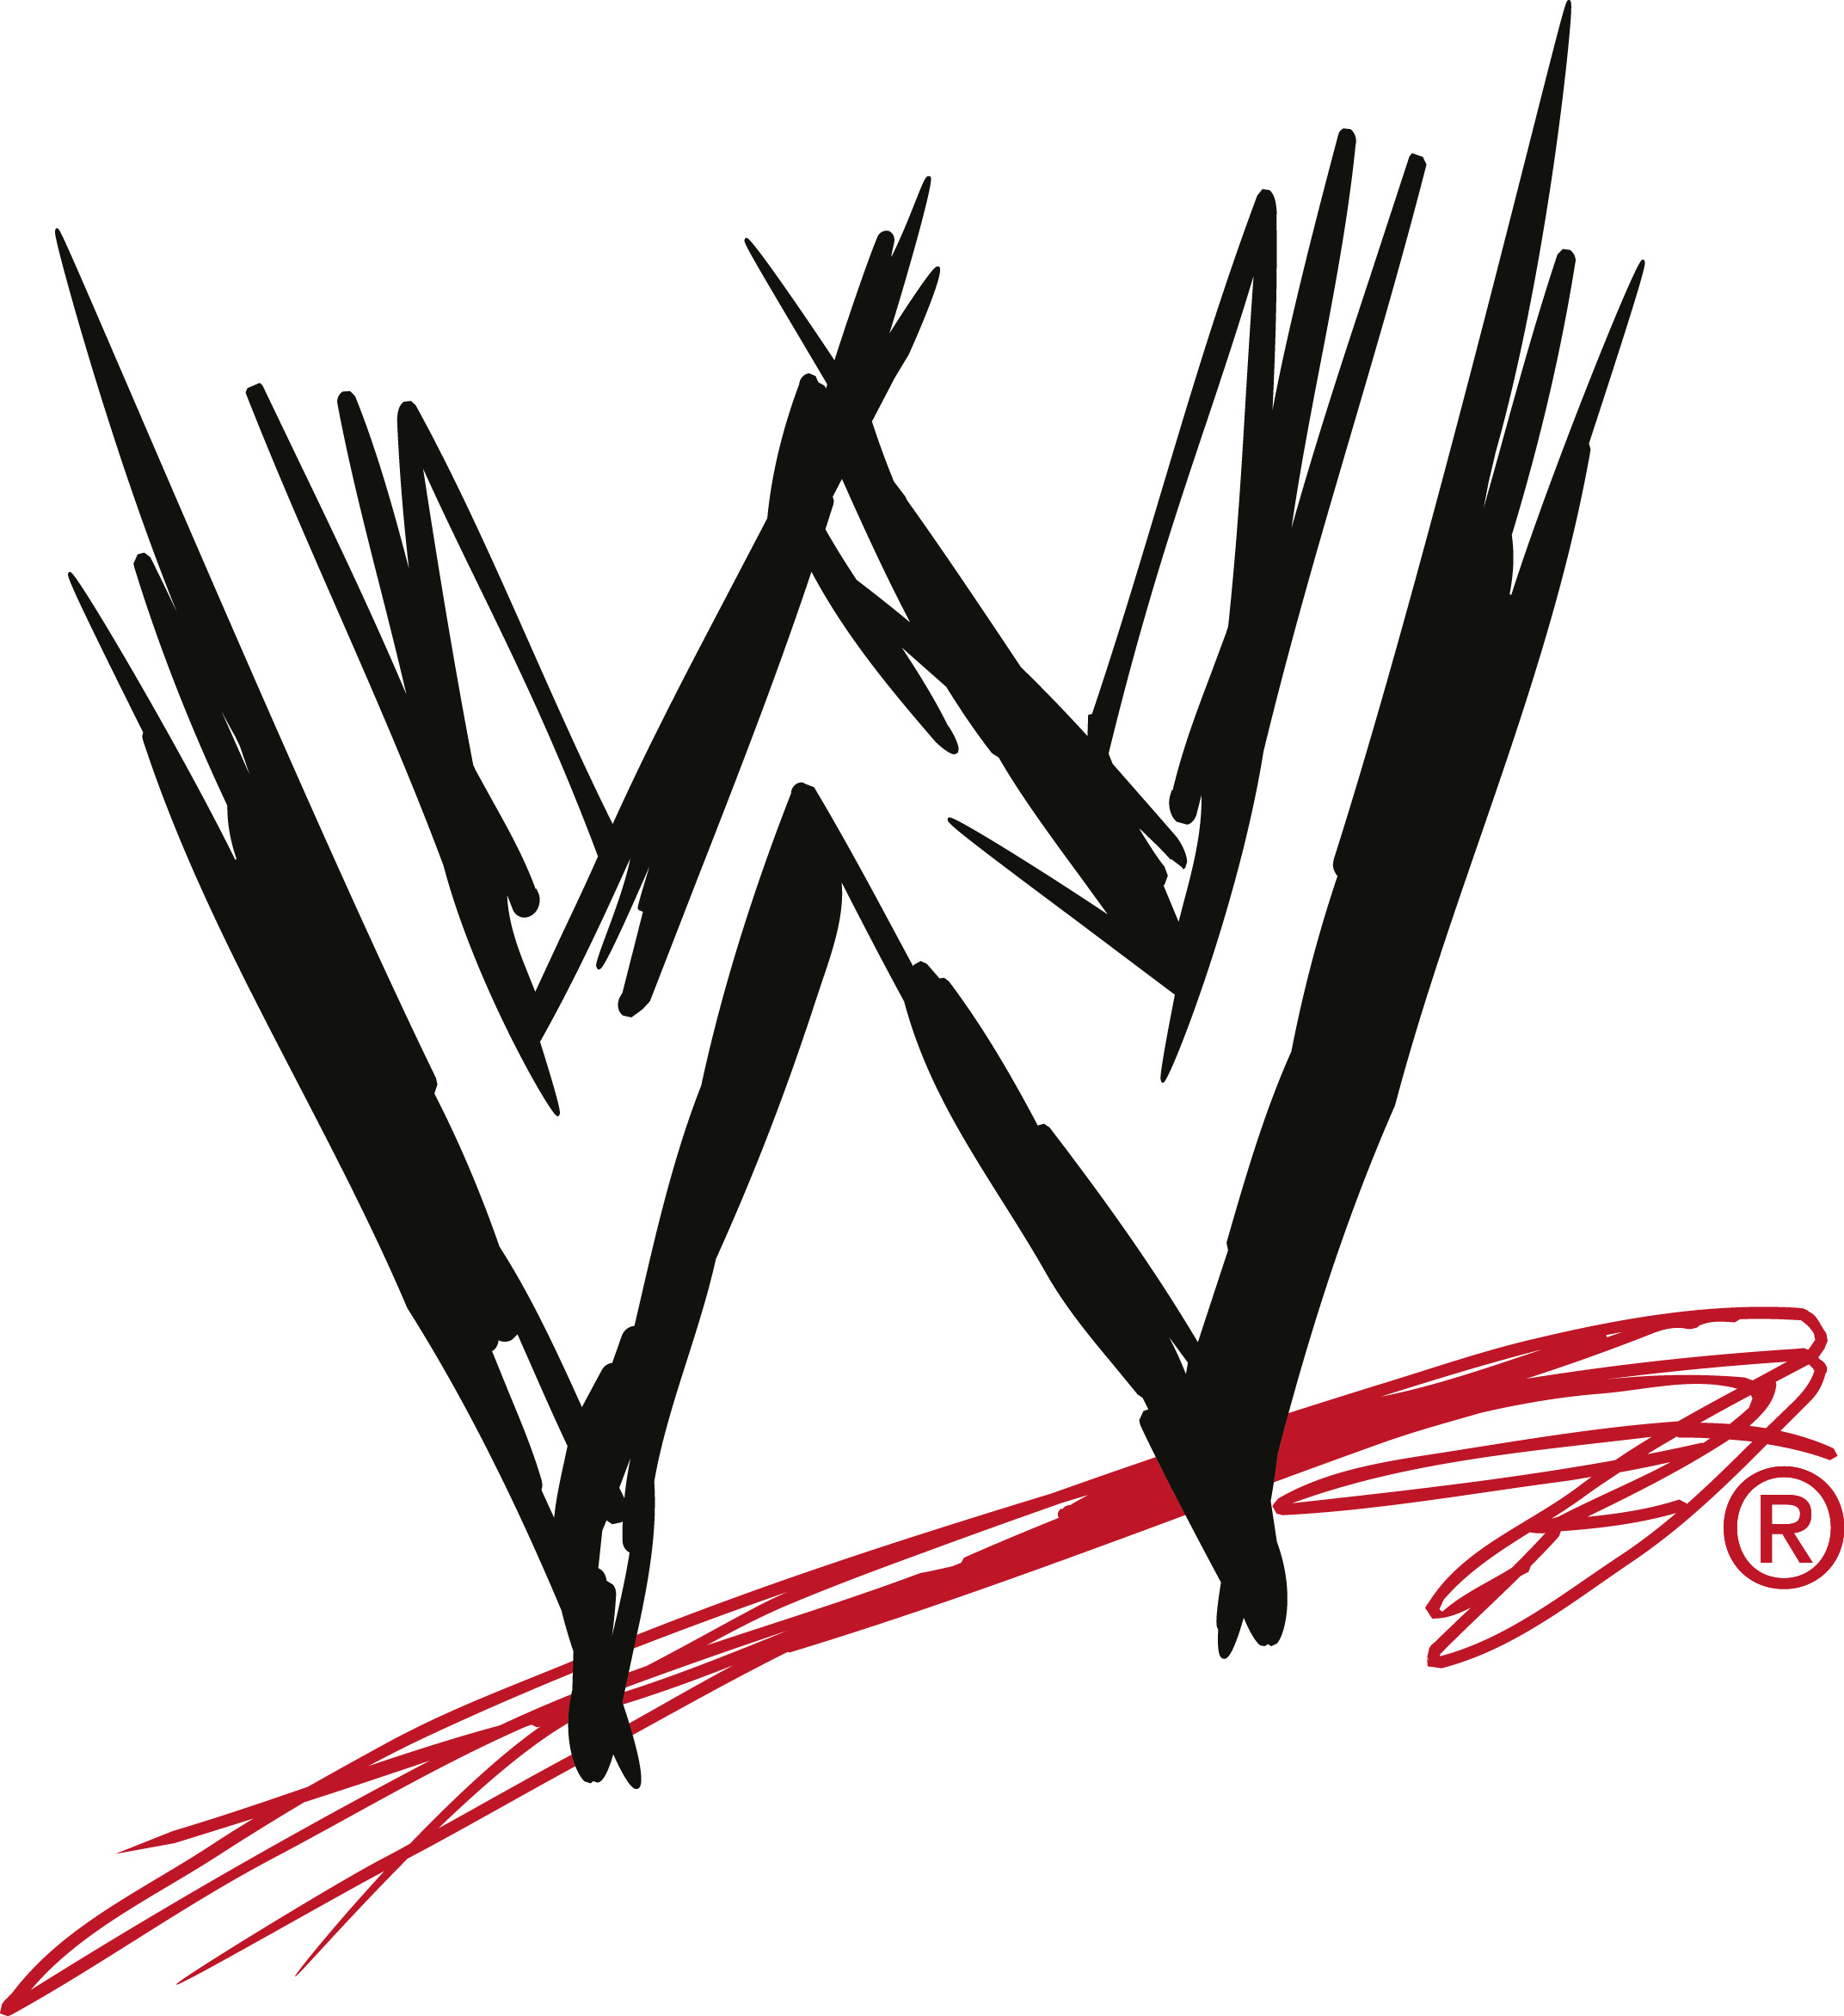 Res: 2144x2344, WWE Logos Thread - General Design - Chris Creamer's Sports Logos .